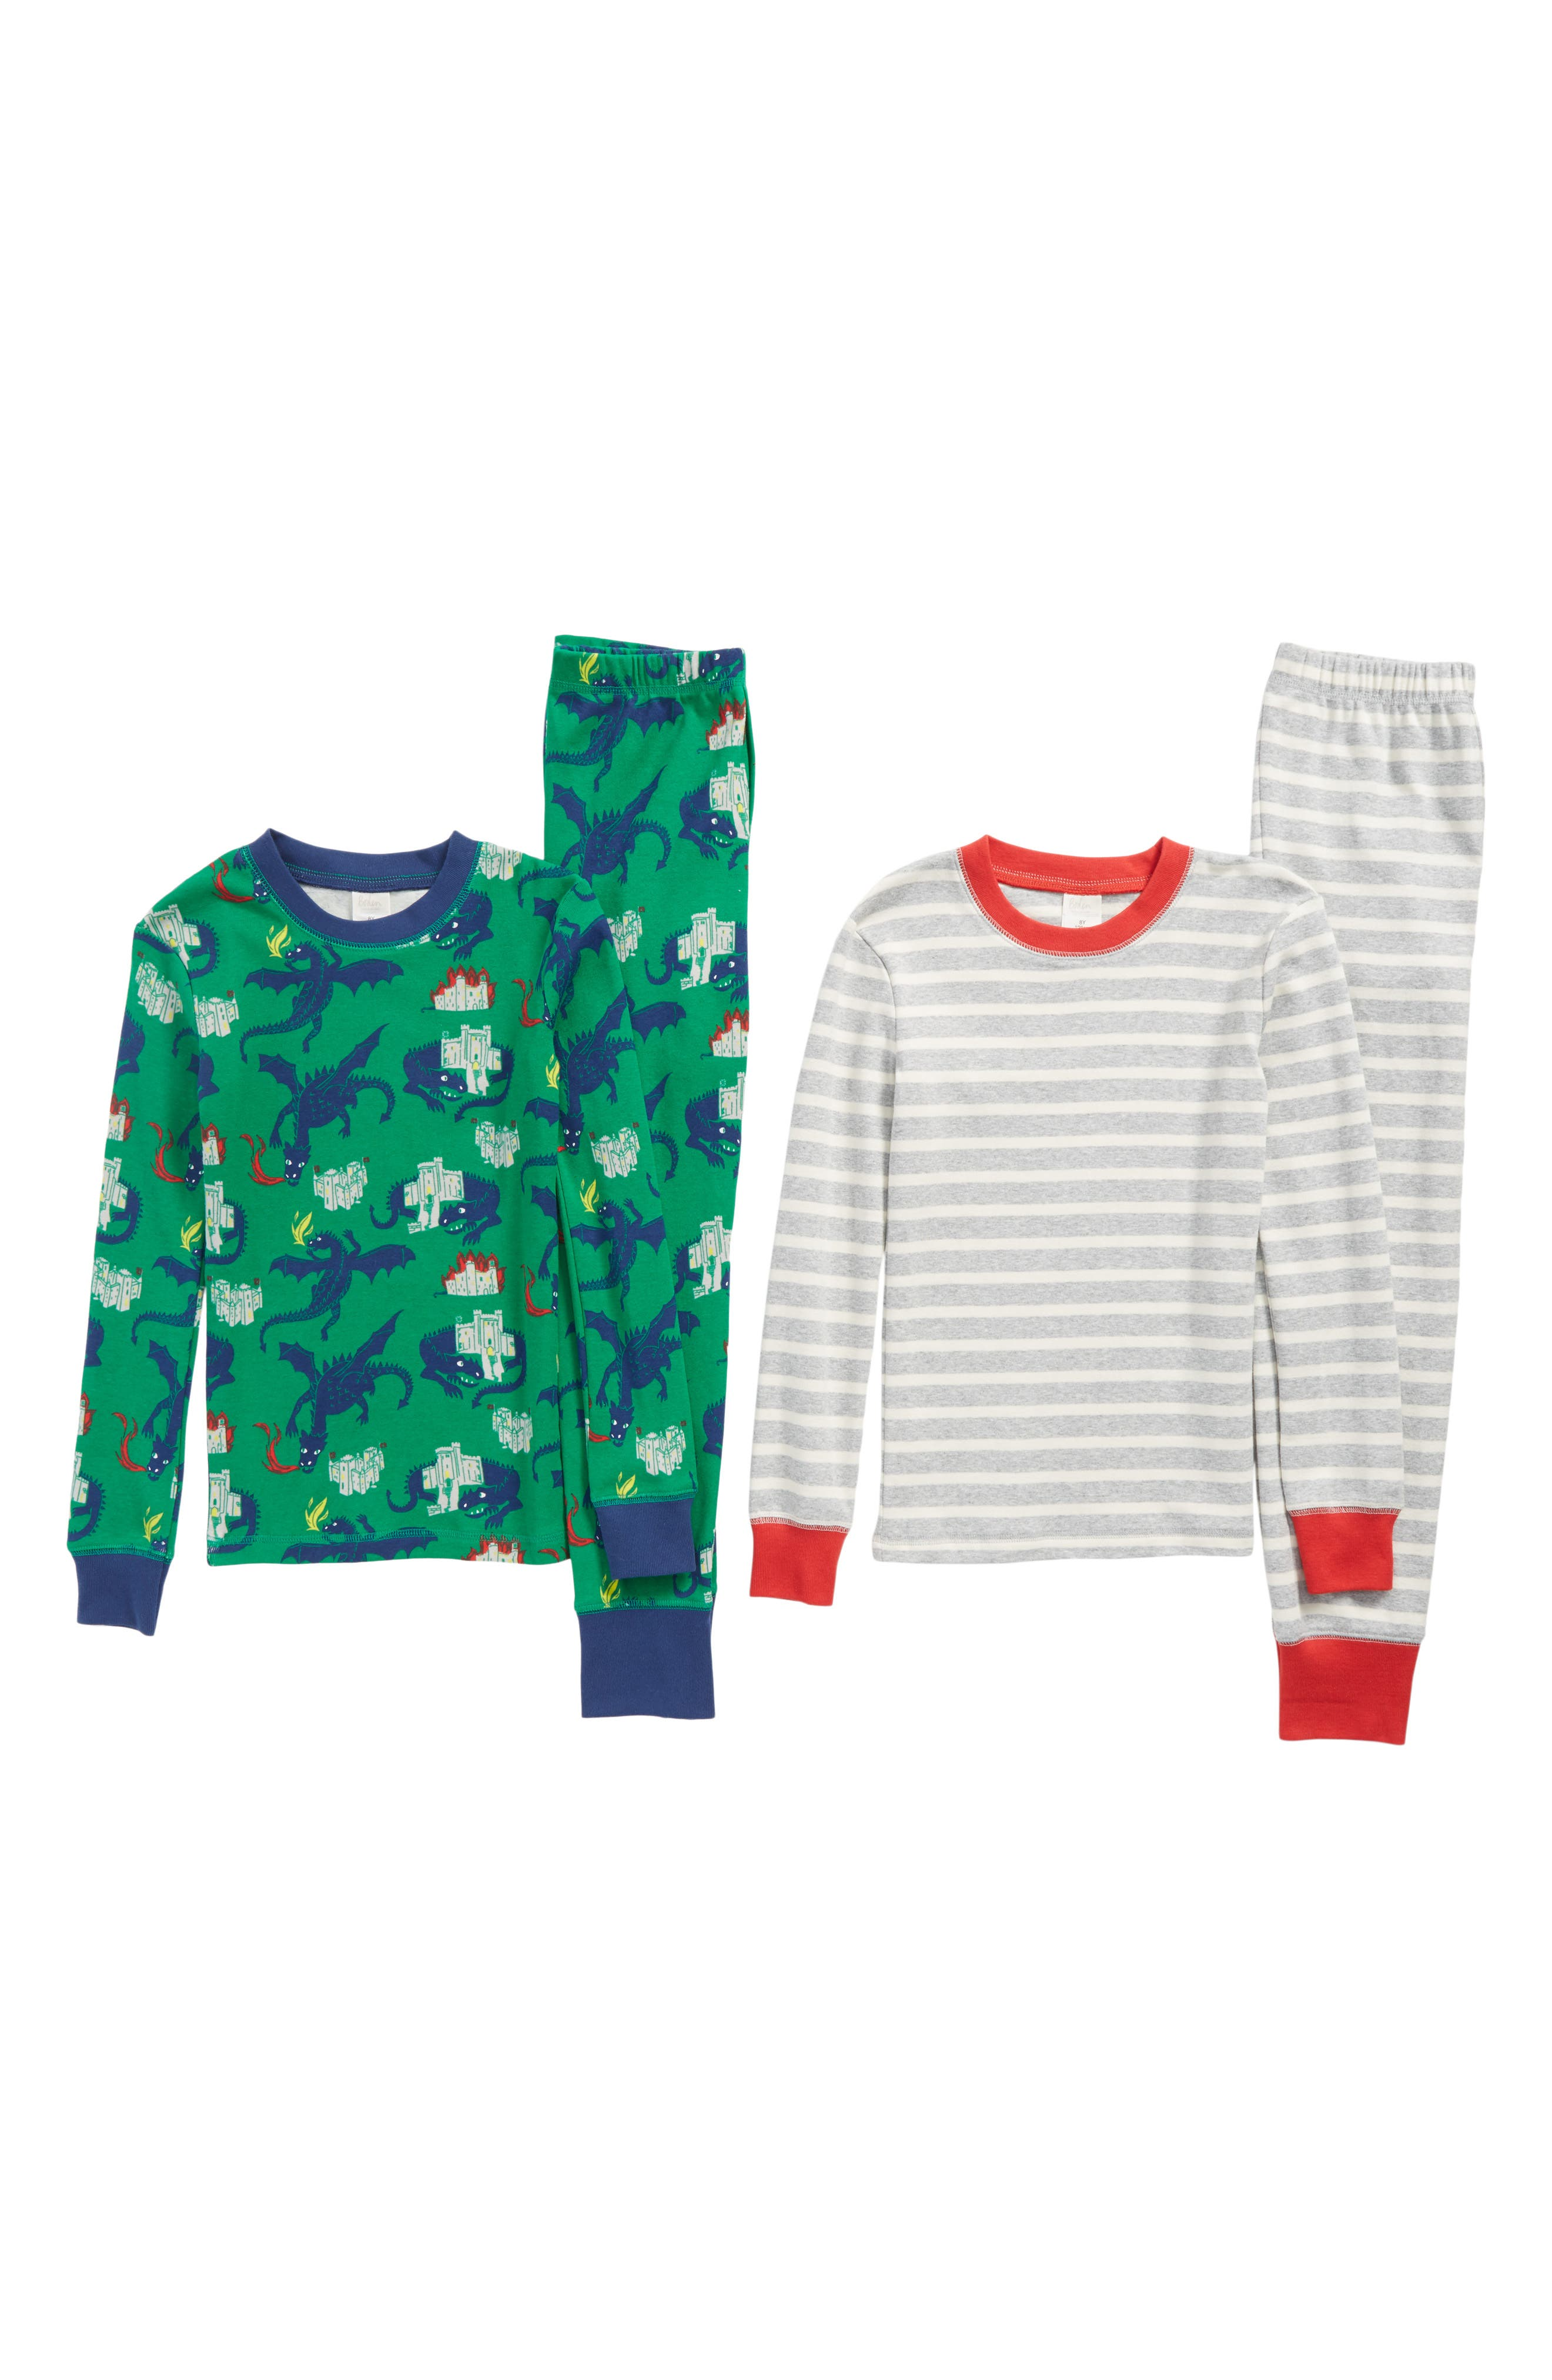 Main Image - Mini Boden Cozy 2-Pack Two-Piece Fitted Pajamas (Toddler Boys, Little Boys & Big Boys)